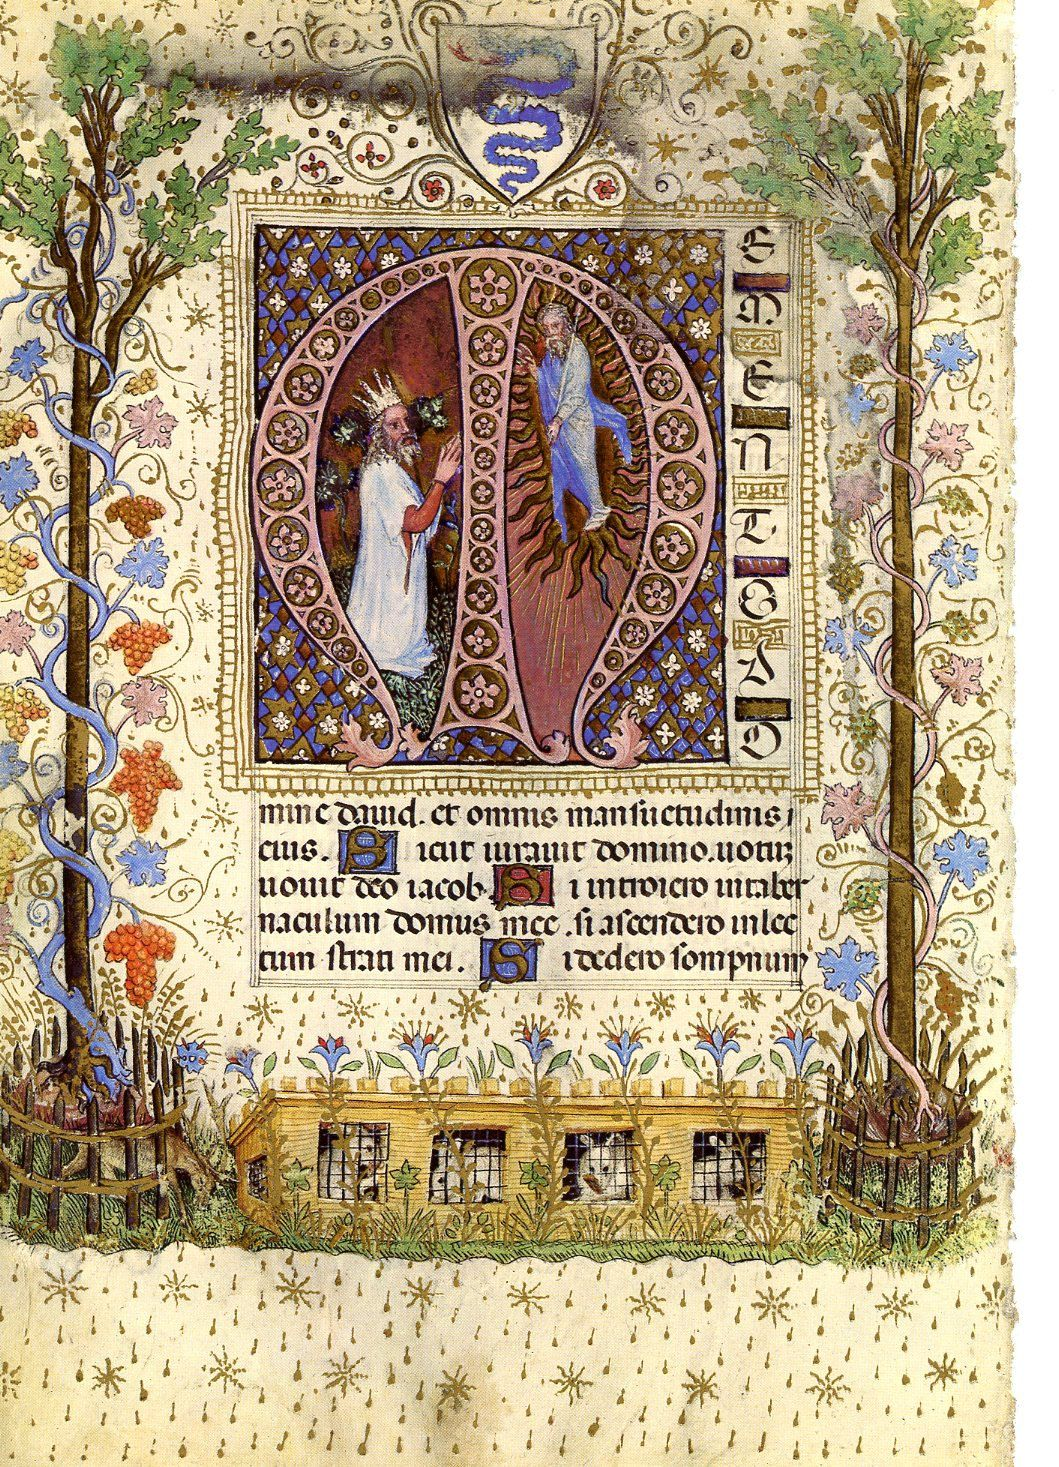 u0026quot book of hours u0026quot  from about 1400 ad  in 2019